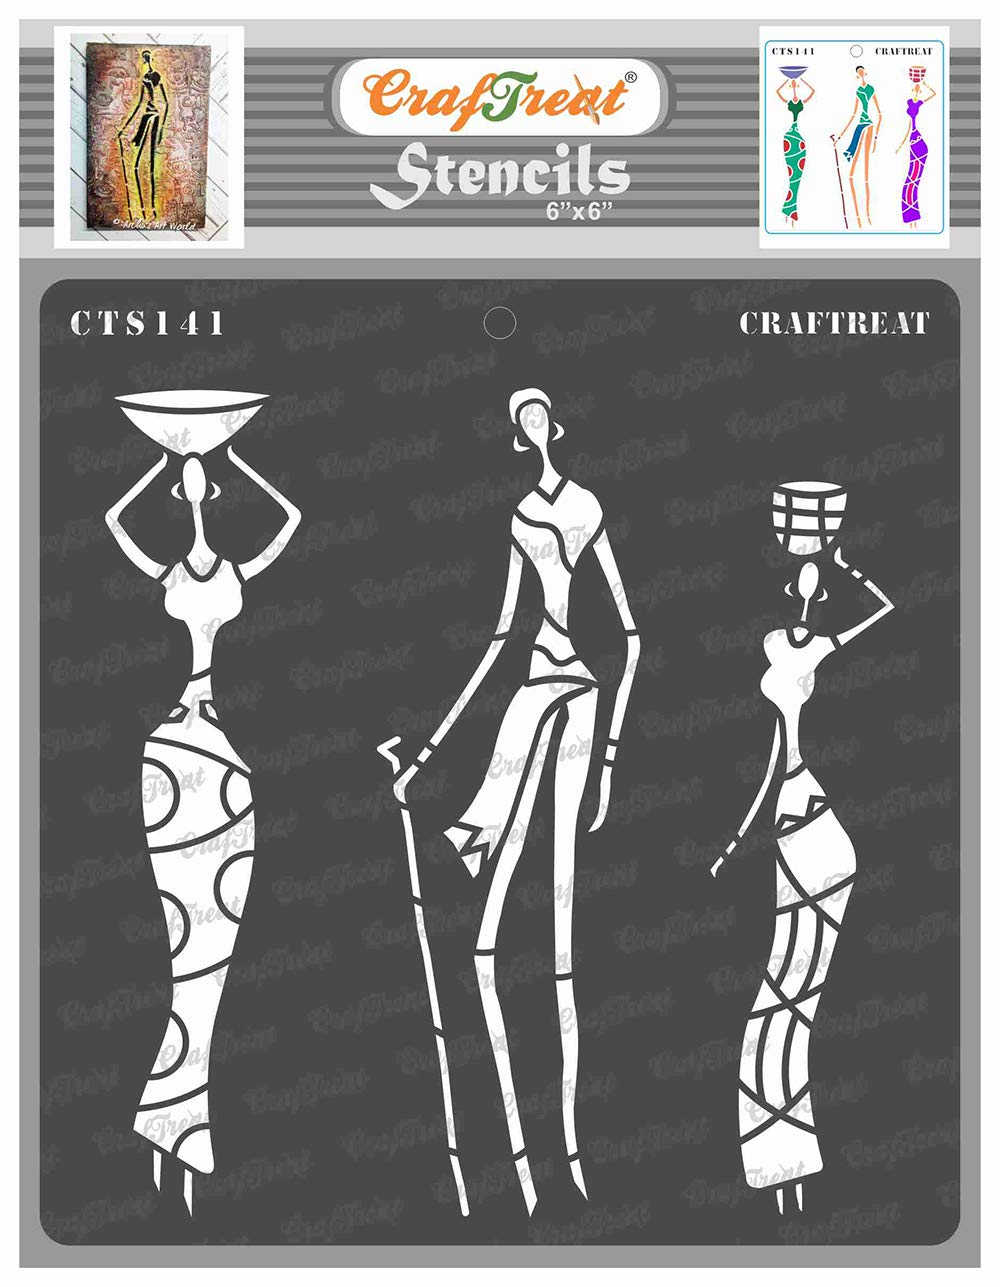 CrafTreat African Tribal Stencils for Painting on Wood, Wall, Tile, Canvas, Paper, Fabric and Floor - Tribal Family - 6x6 Inches - Reusable DIY Art and Craft Stencils - African People Stencil